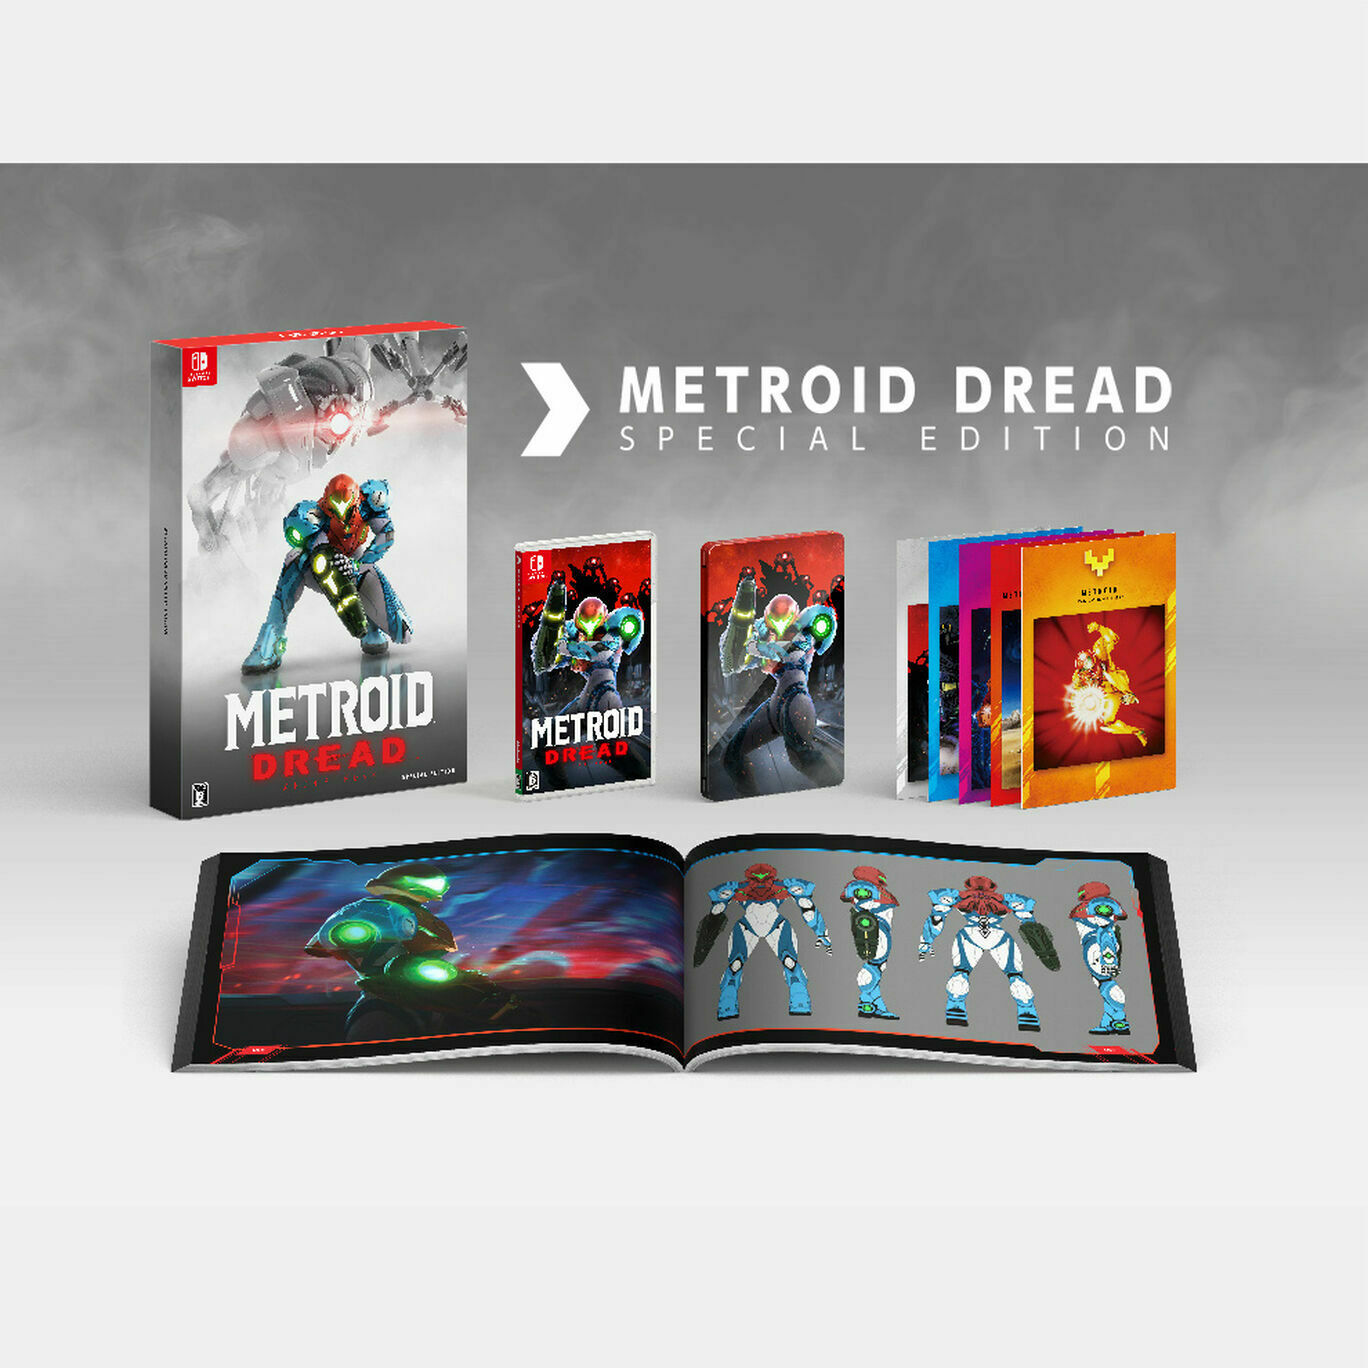 PSL Metroid Dread Special Edition Limited goods not include game w Tracking